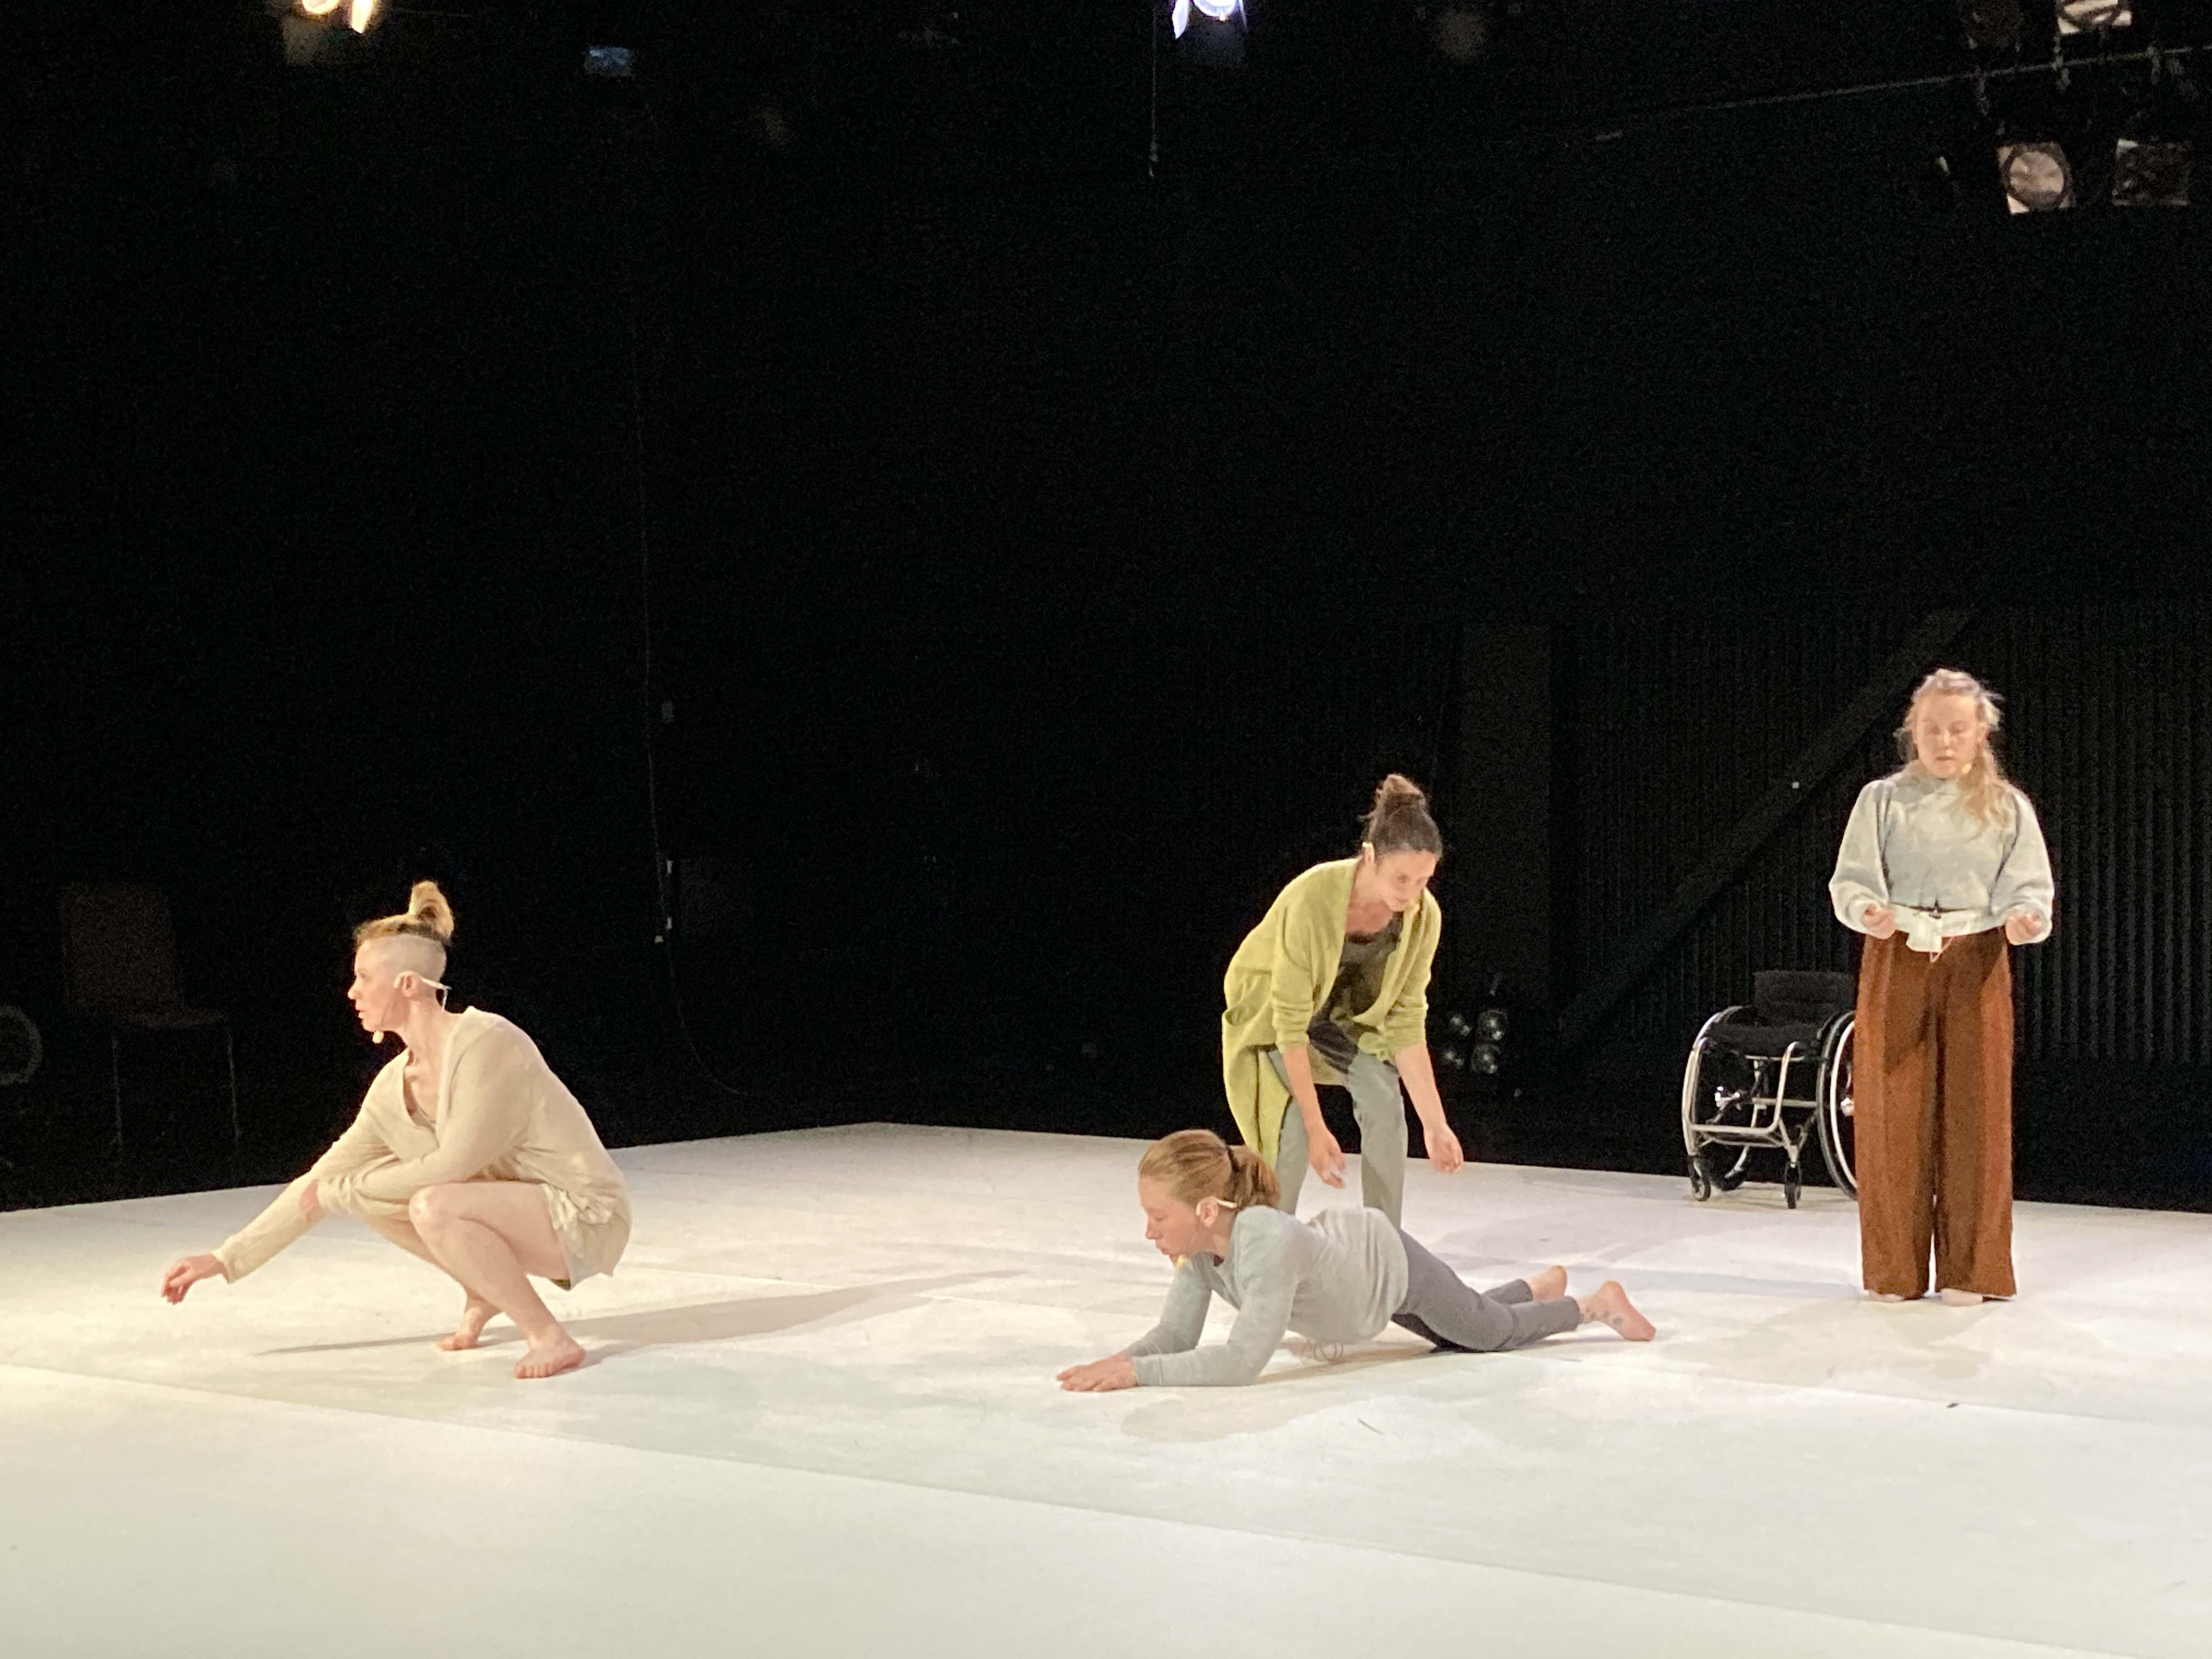 The image depicts four dancers on a white dance mat against a black background. Two of the dancers are crouching, one is on all four and one is standing up. In the background there is a wheelchair.